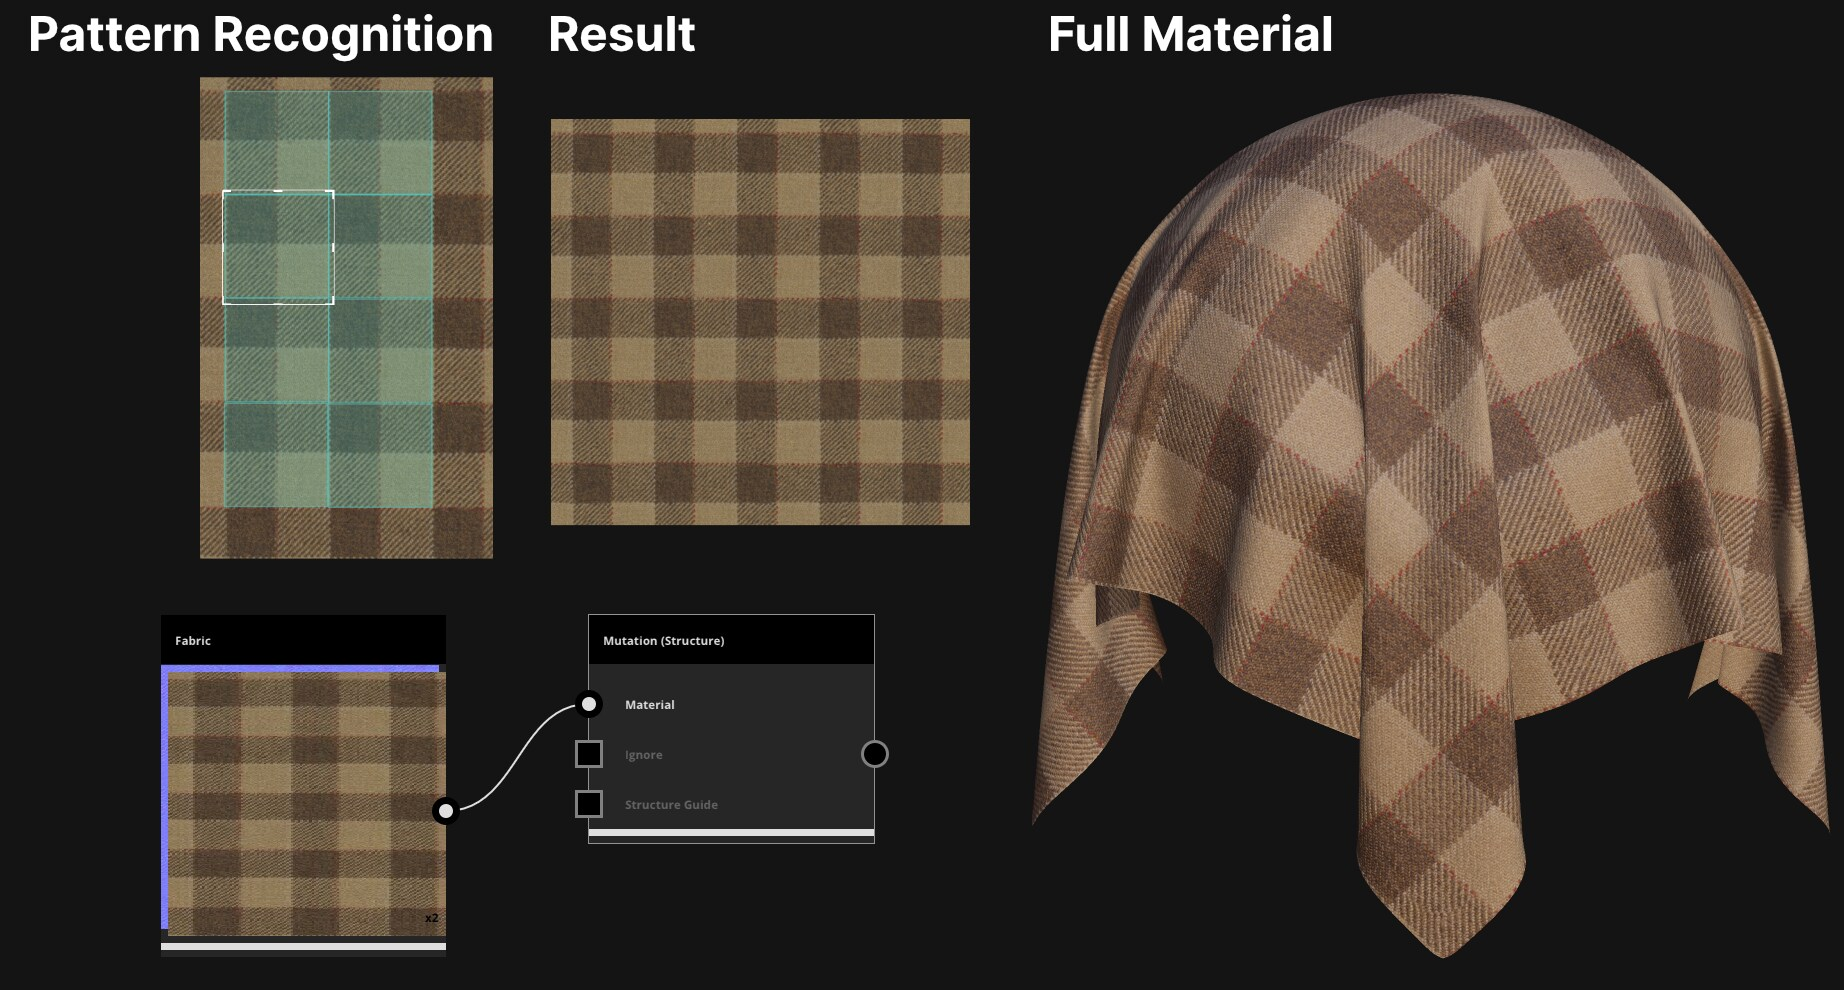 Left of the image shows three squares and rectangles brown checked patterned fabric samples. The bottom square says 'Fabric above it. It has a white line branching off of it to a 2D box that has three words with check boxes next to them. The top word says 'Material' the middle word says 'ignore', the bottom word says 'structure guide'.' 'Material' is checked. The top of the box says 'Mutation (Structure)'. The rectangle on on the top left says 'pattern recognition' above it and has a transparent smaller rec